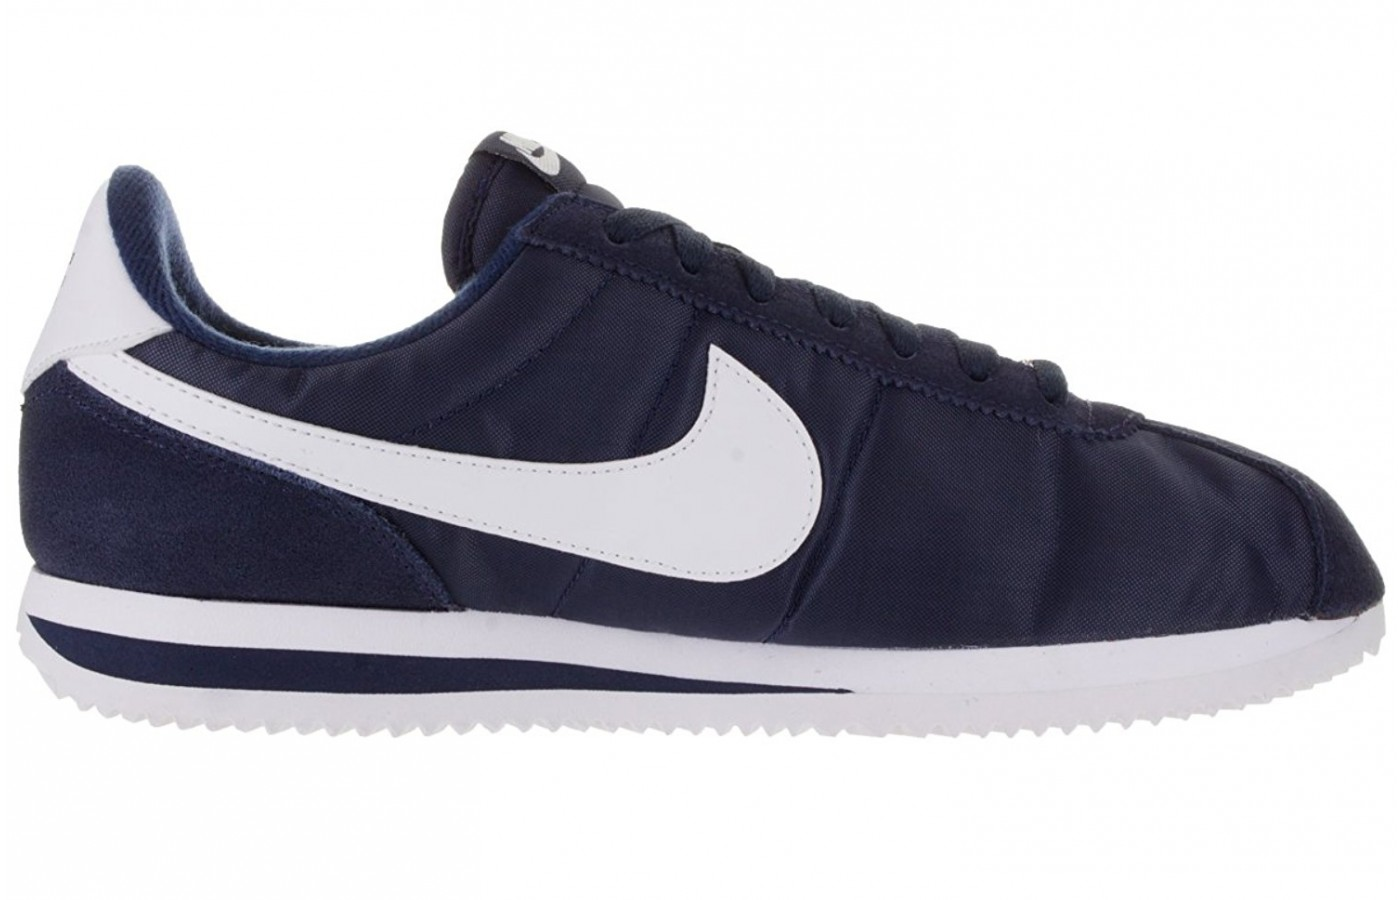 Full view of the length of the Nike Cortez